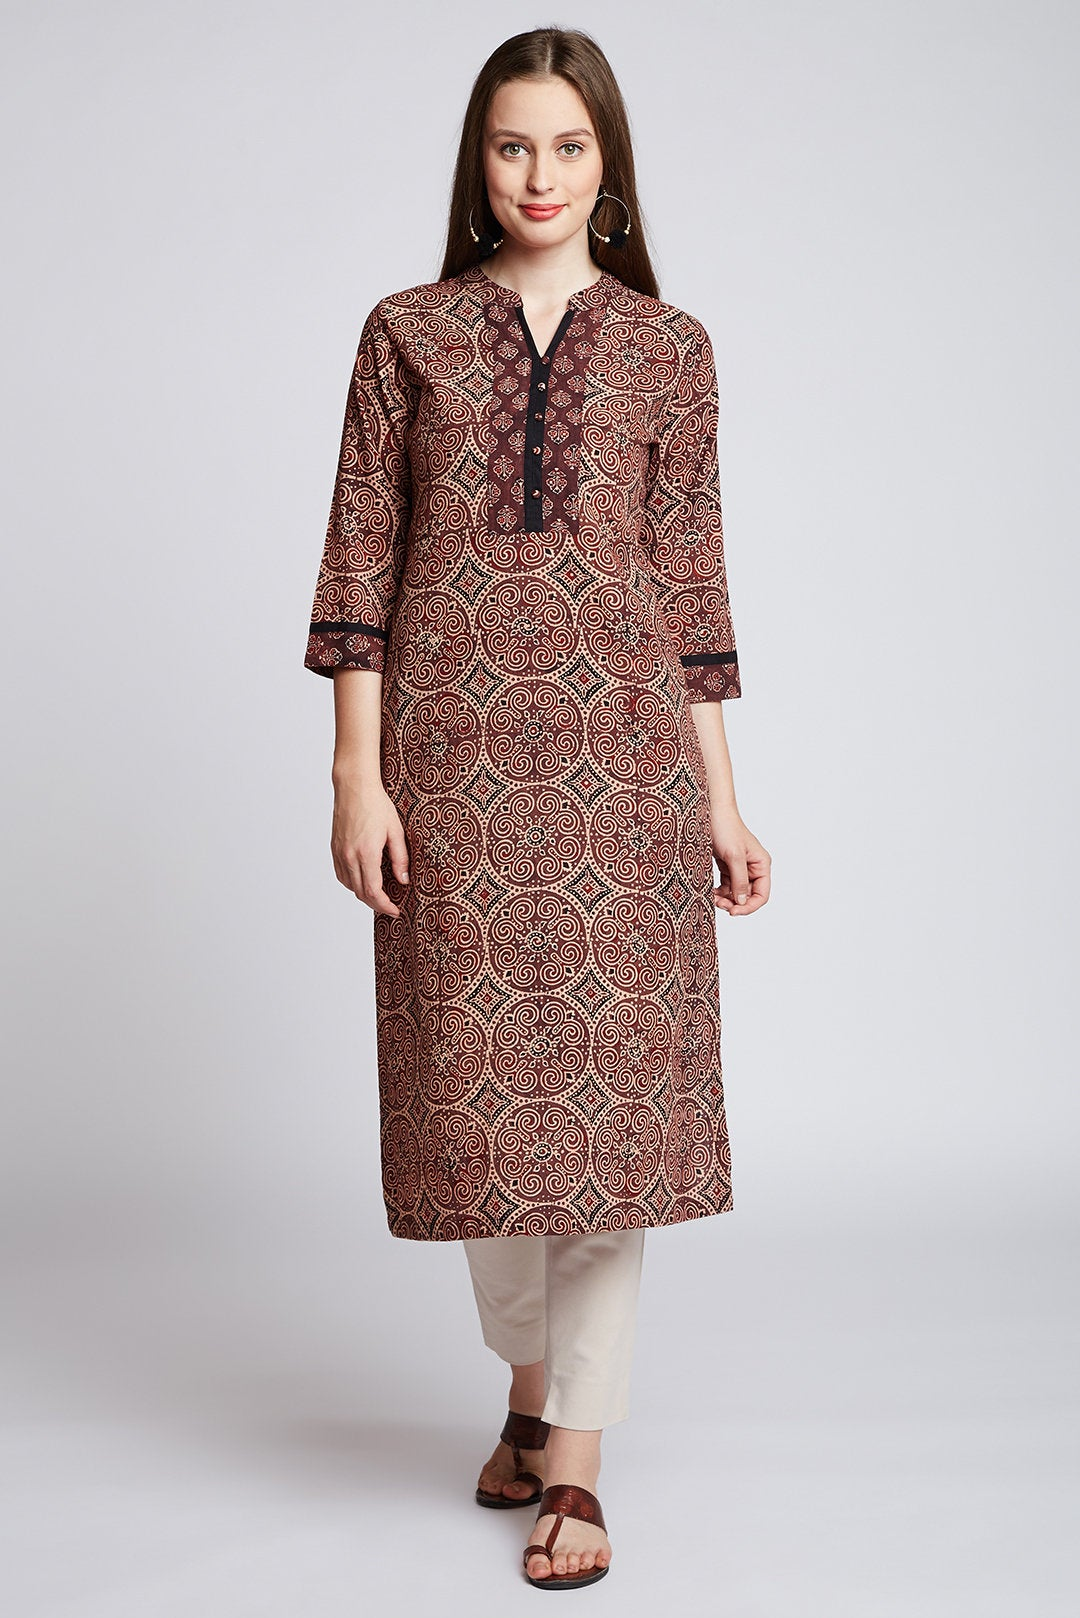 Hand block ajrakh printed Indian ethnic long kurta